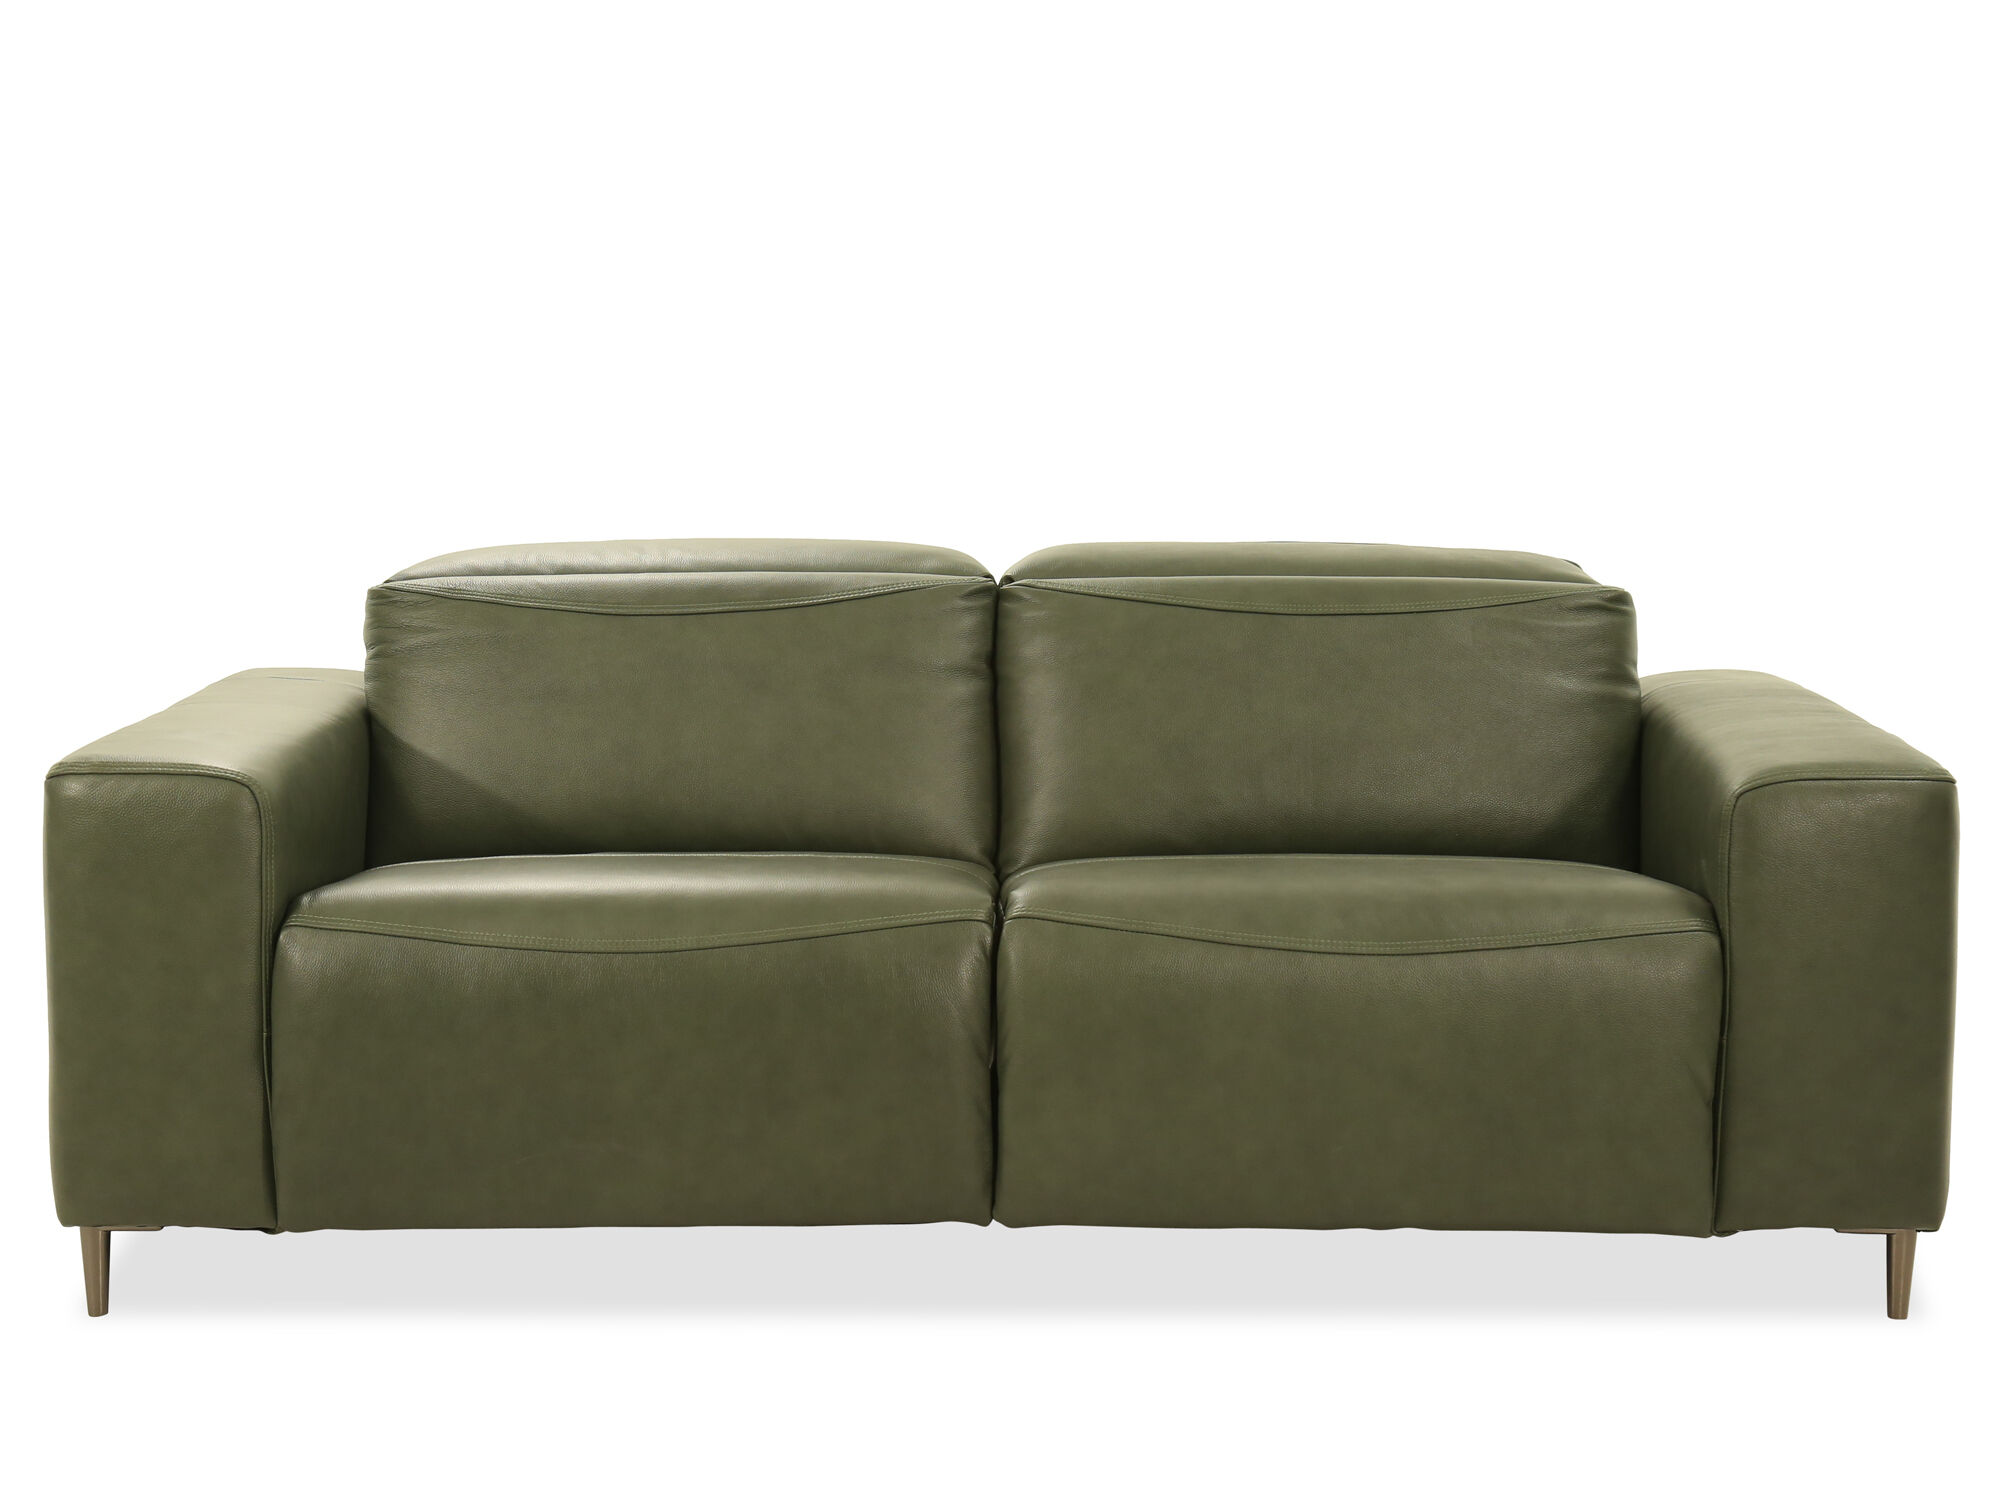 Power Reclining Leather Sofa In Green ...